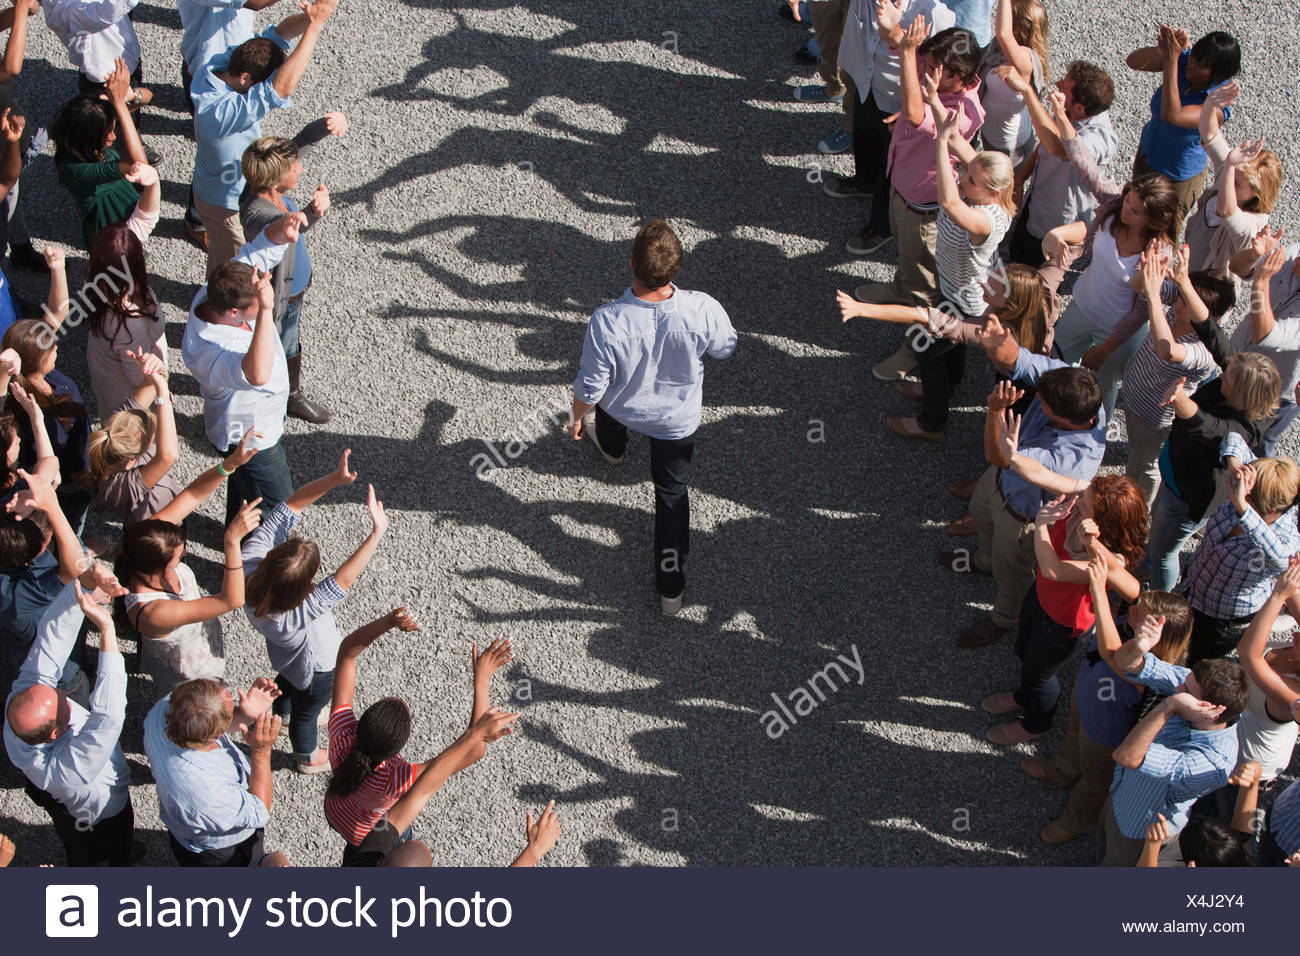 Man walking between two groups of people, elevated view - Stock Image